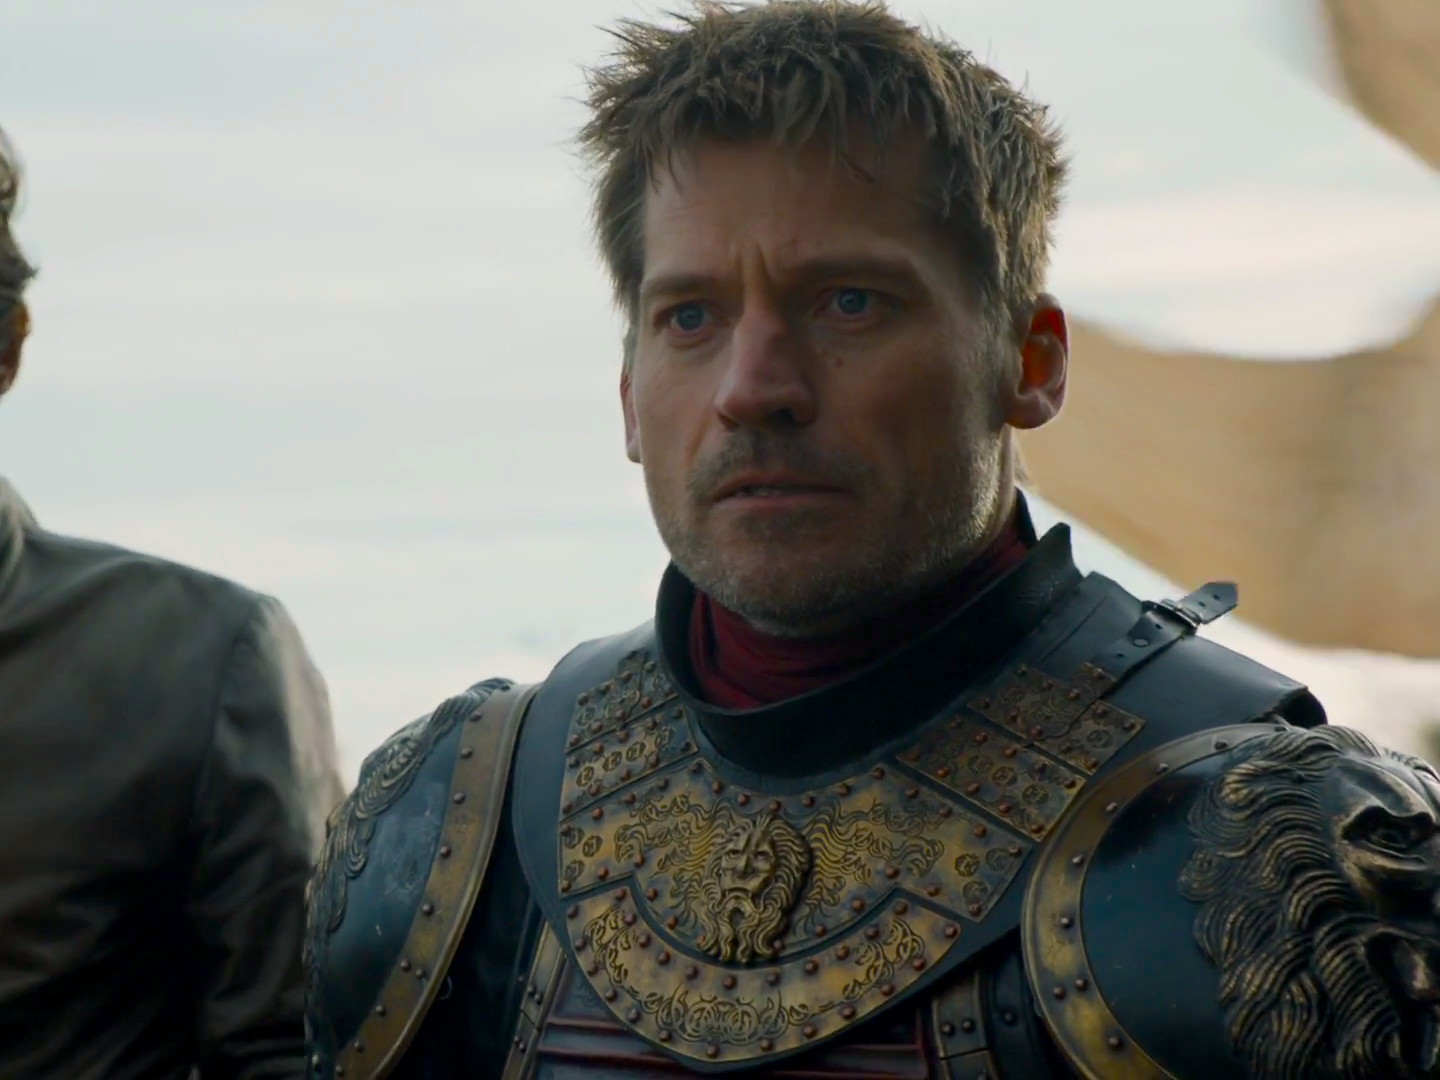 Can We All Agree That Cersei's Dragon Attack Strategy Was Actually Pretty Lame?